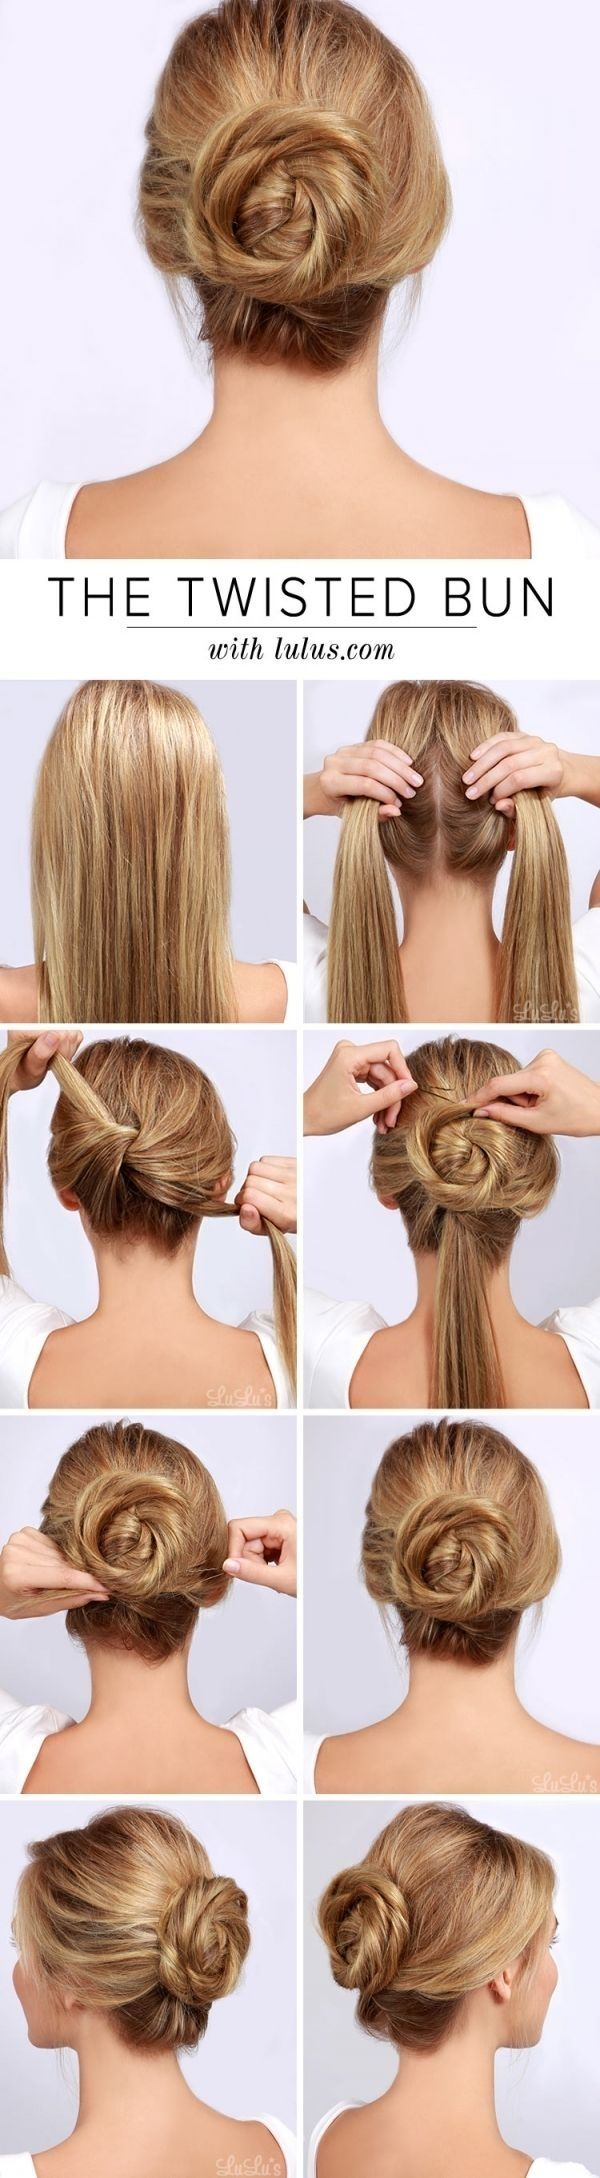 get 20+ simple hairstyles for girls ideas on pinterest without